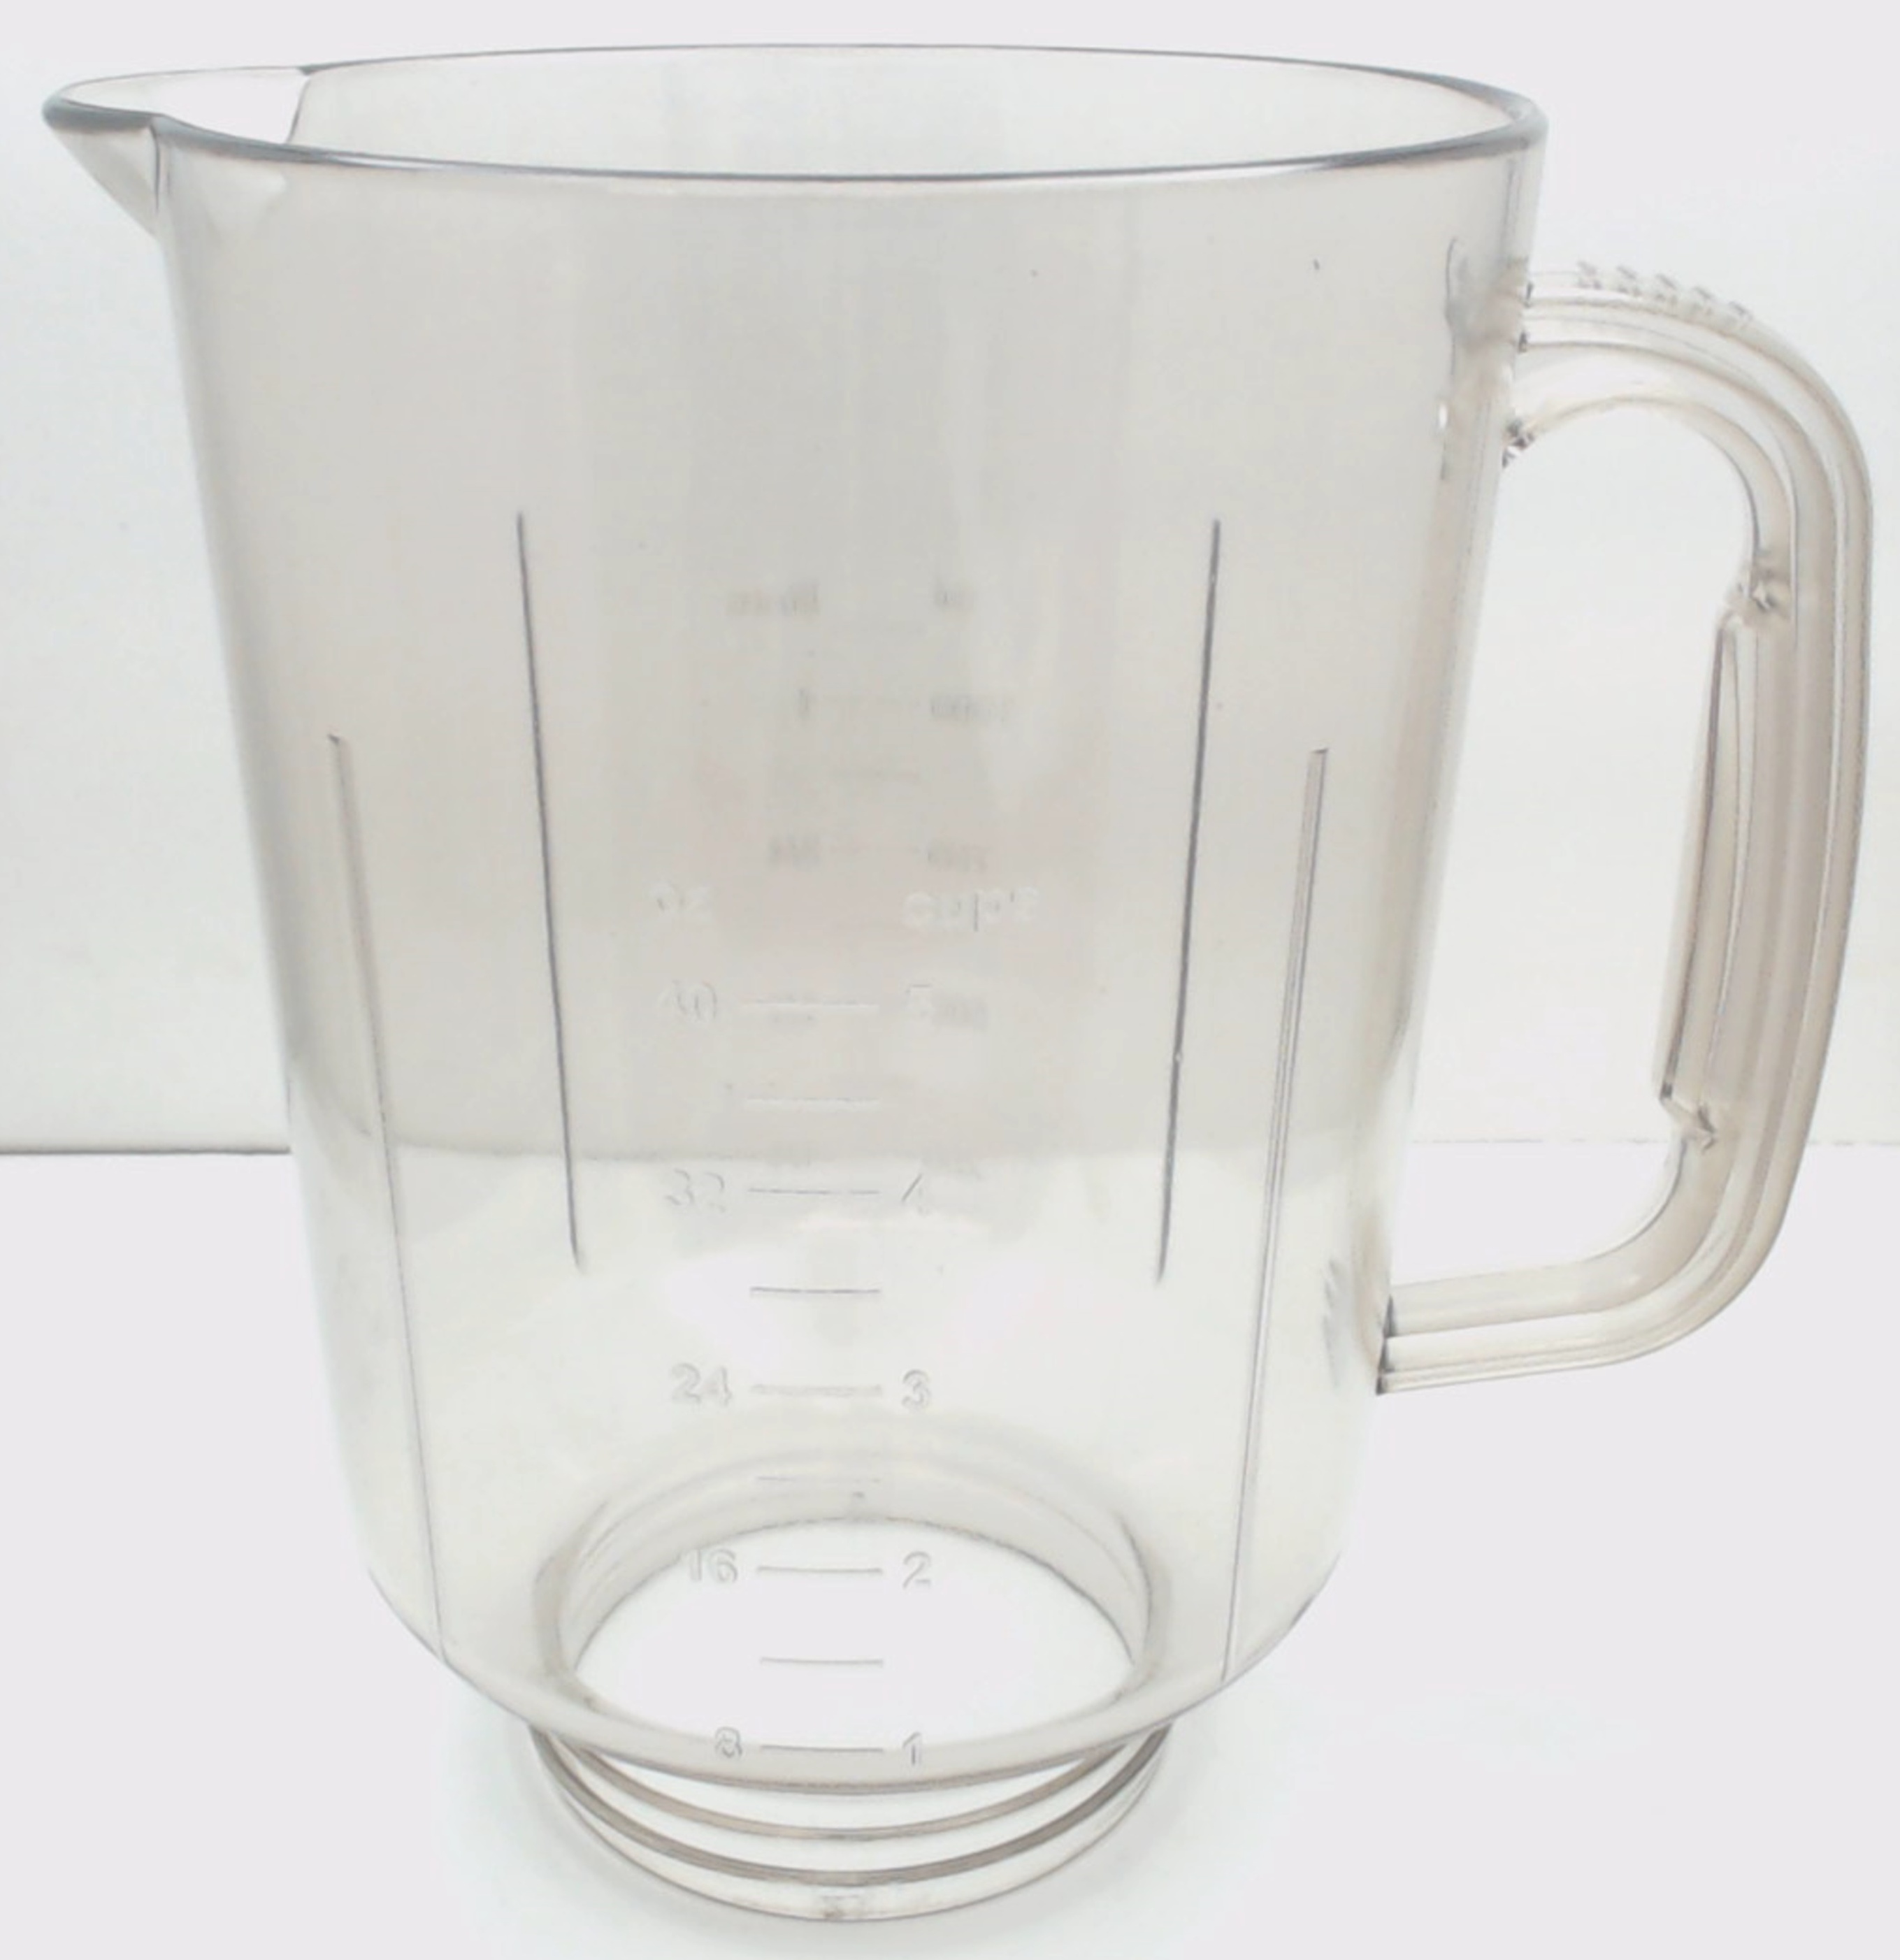 Plastic Blender Jar for KitchenAid Blenders, KSB3 & KSB5 Models, KSBGGC 9704200P | eBay